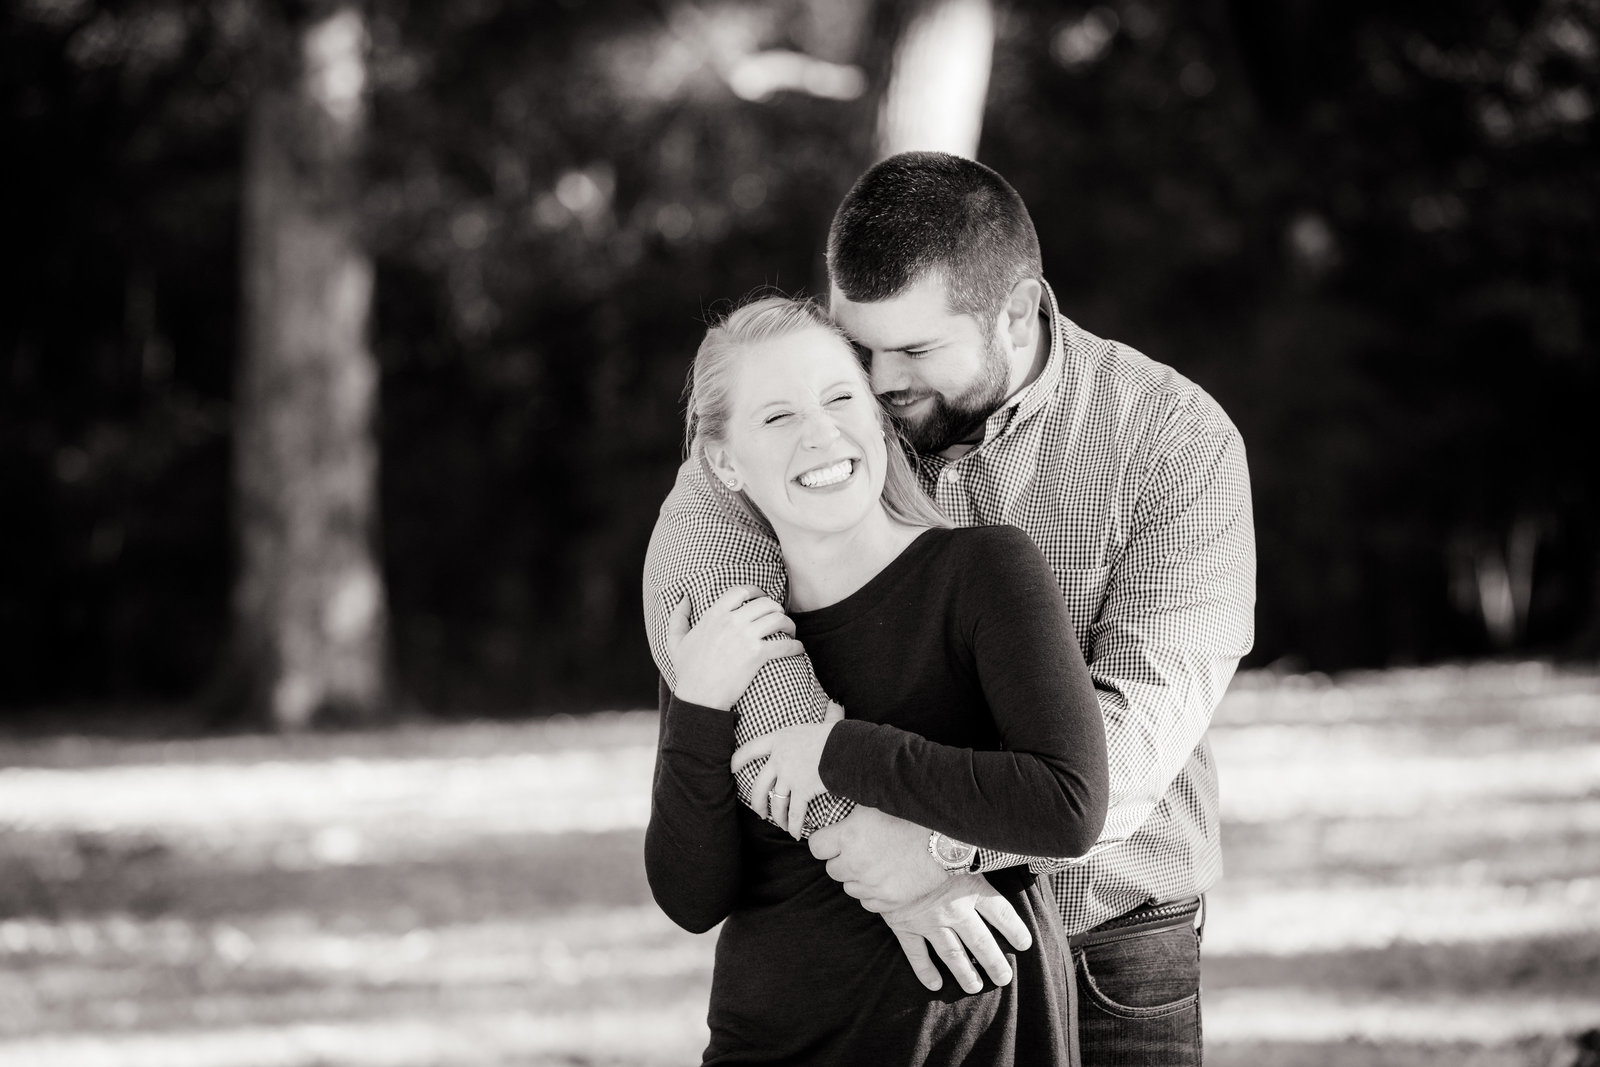 Lovely couple portrait in black and white